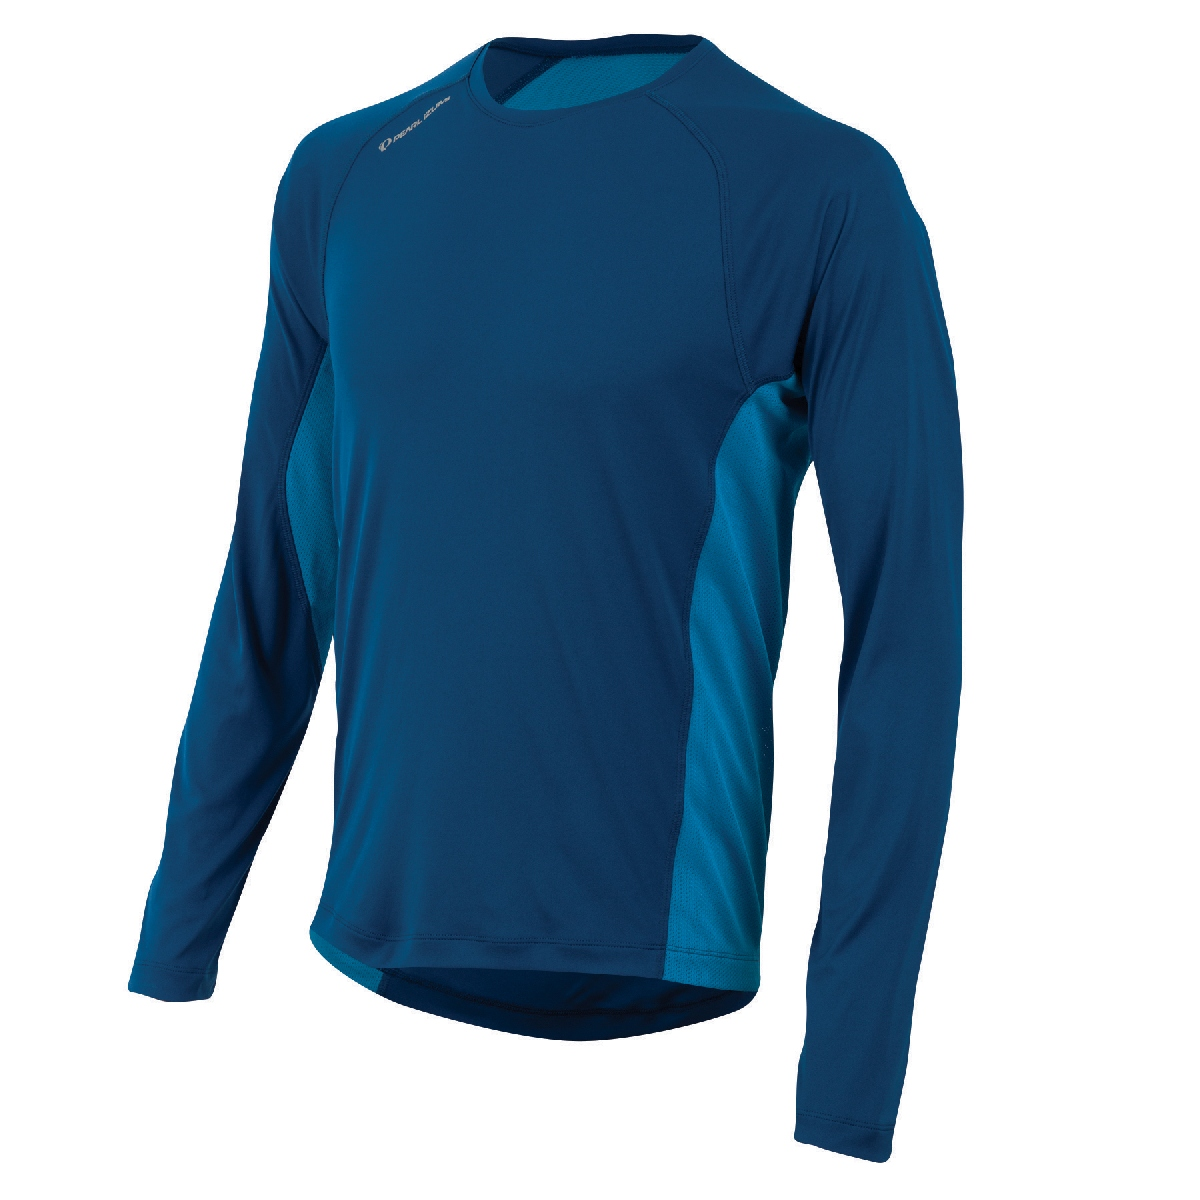 Pearl Izumi Flash Long Sleeve Running Top Men's Size XXL Limoges BrilliantBlue U.S.A. & Canada